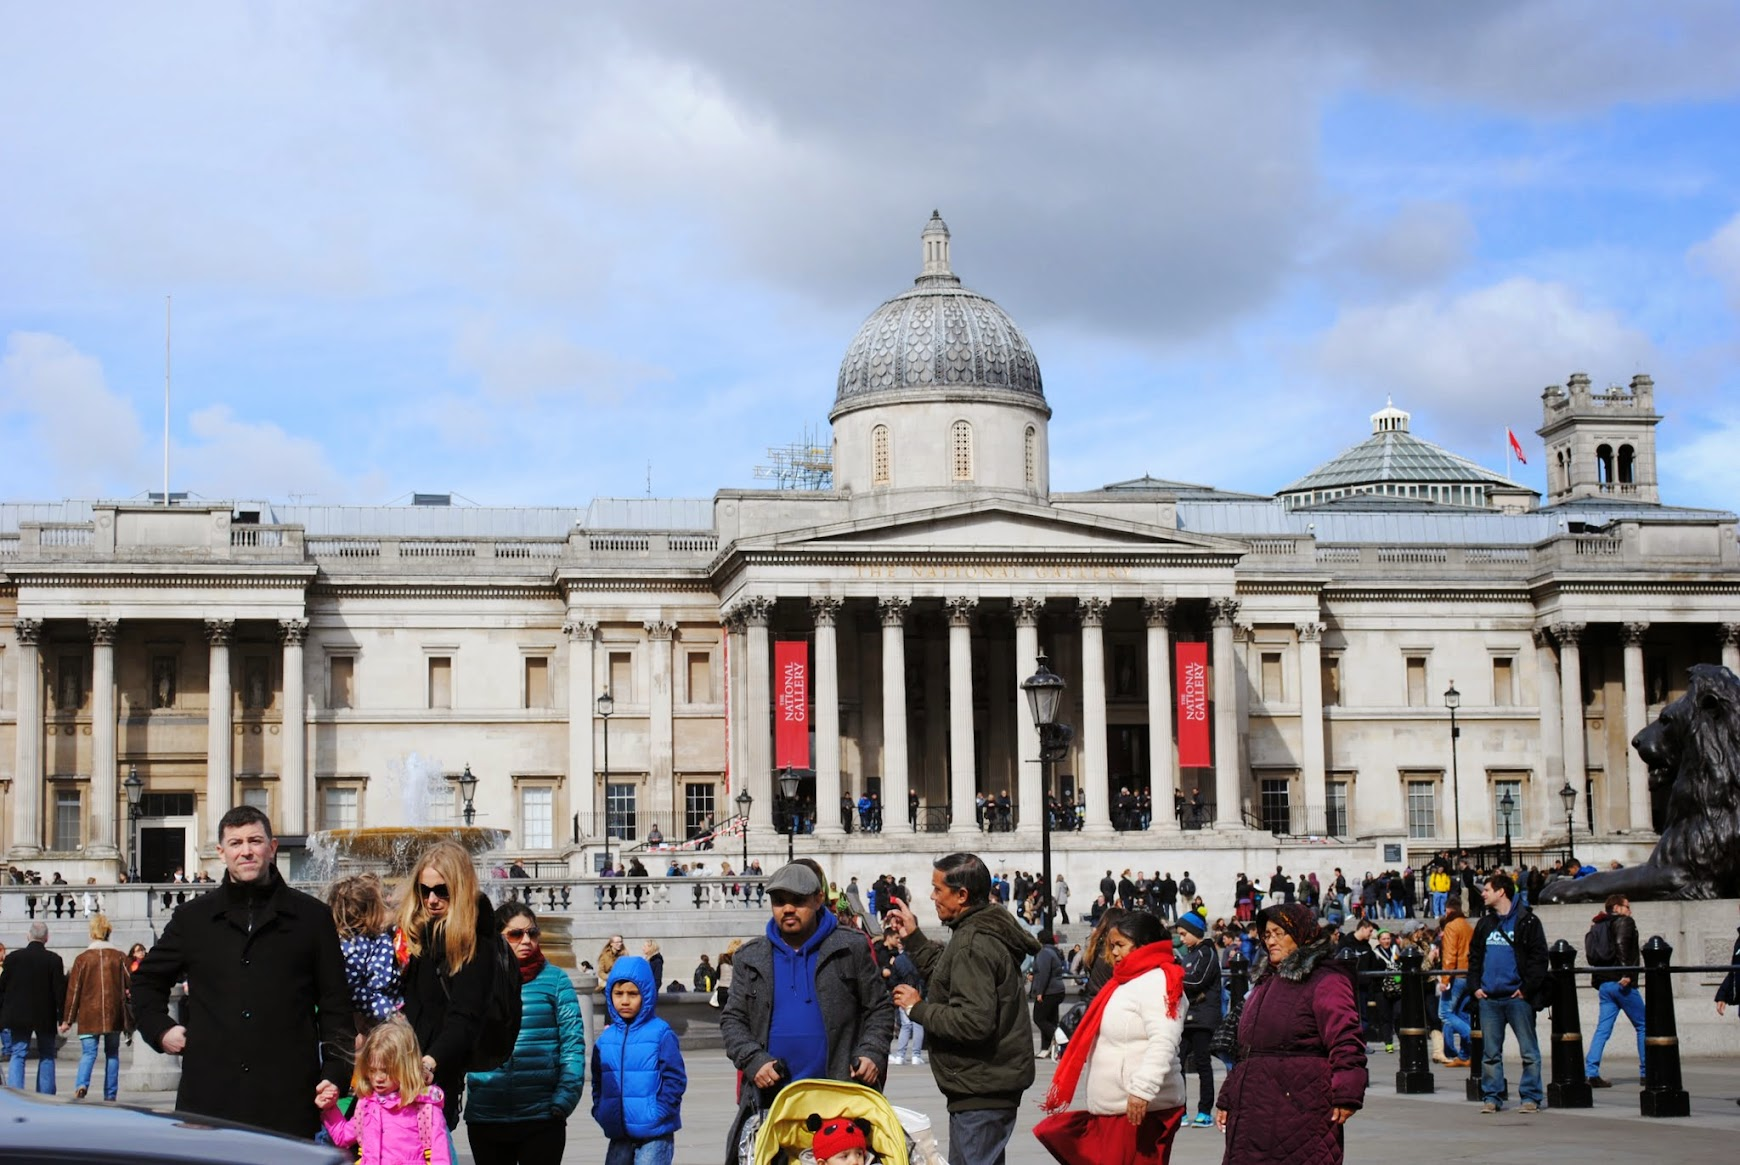 My Photos: London -- The National Gallery